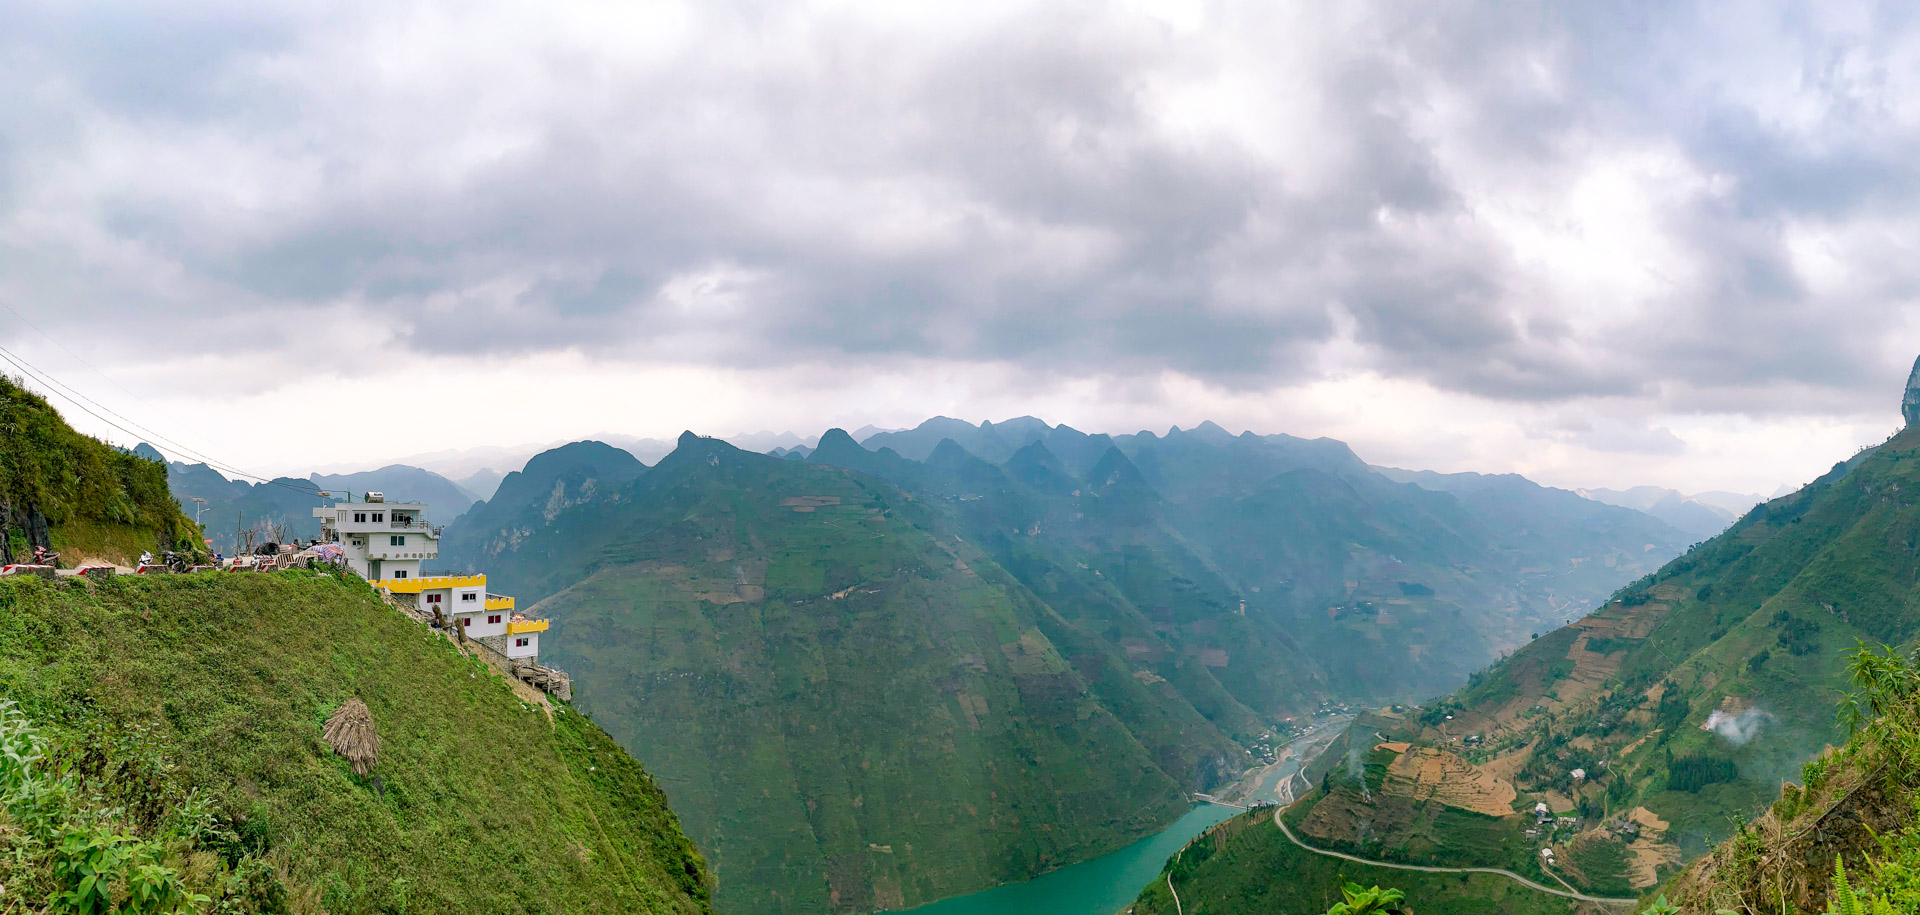 Outcry over 'eyesore' building on majestic Vietnam mountain pass